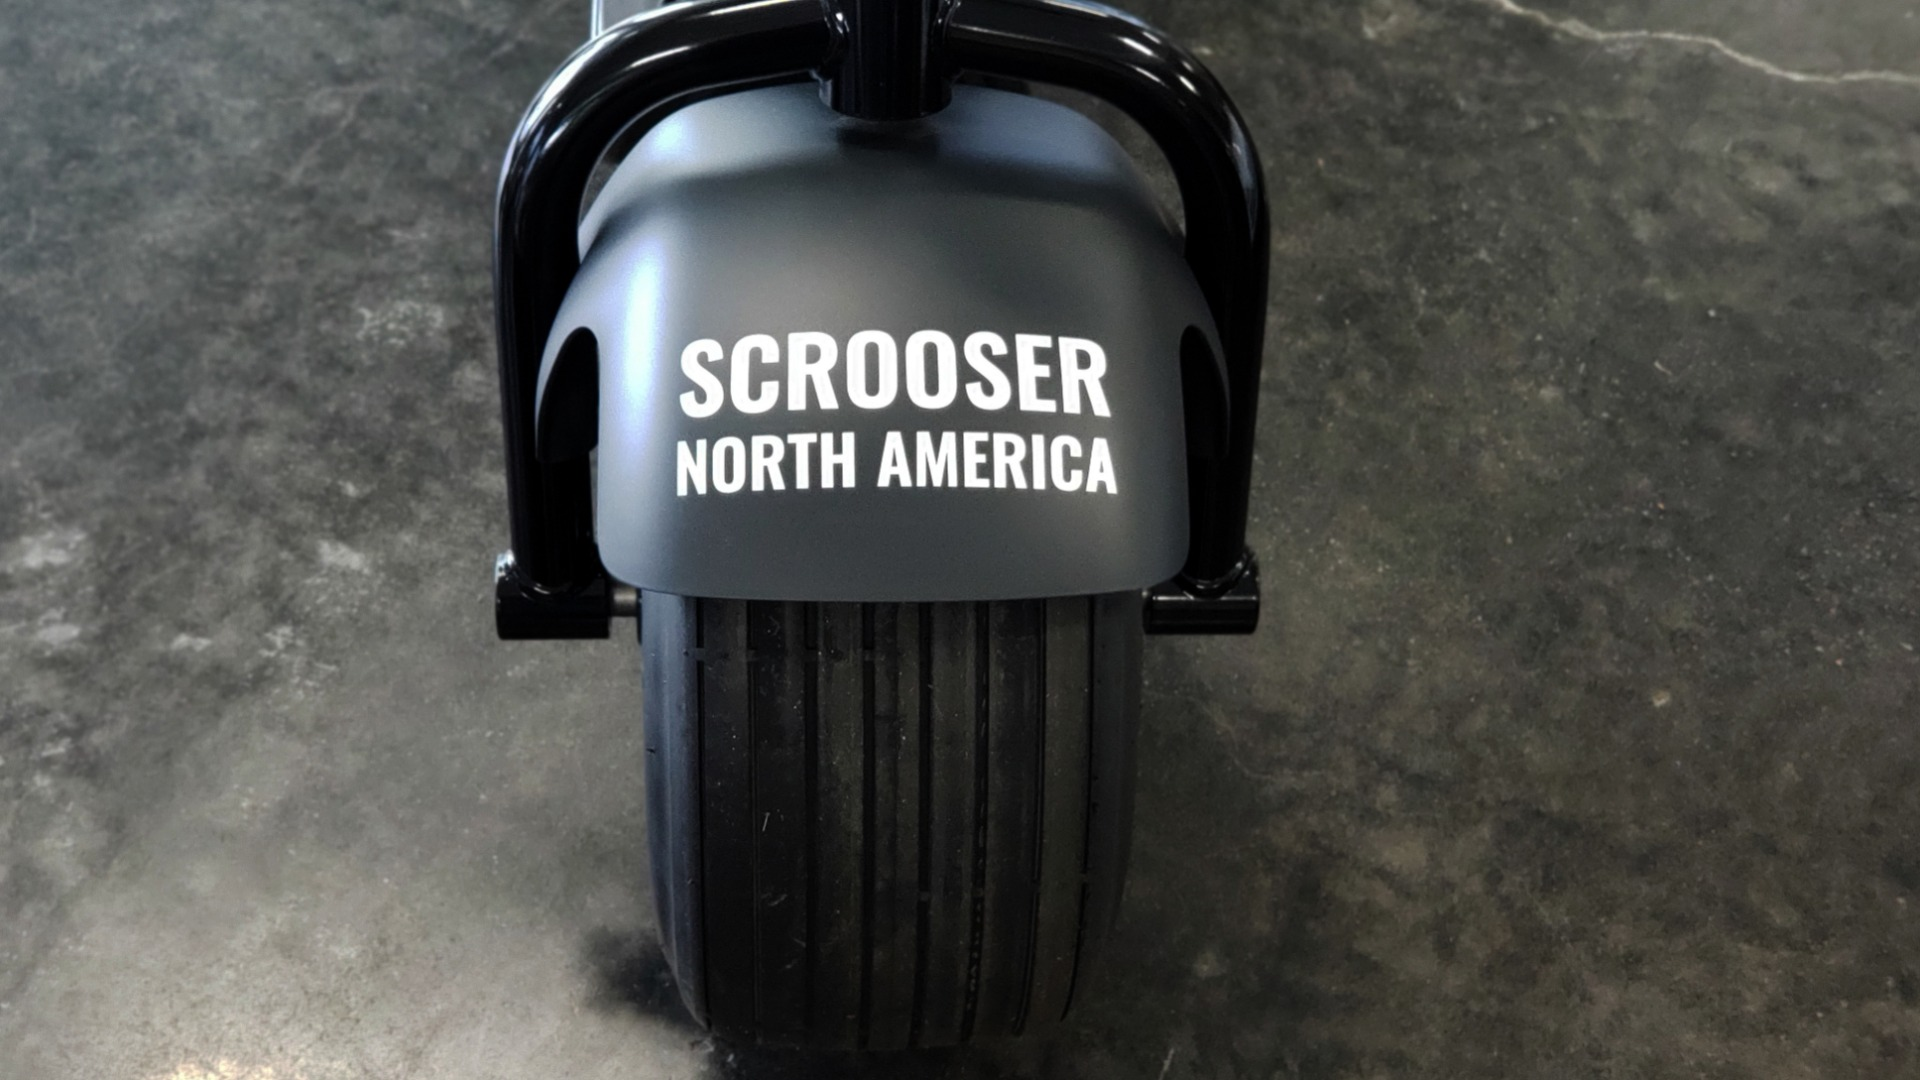 Used 2018 SCROOSER ELECTRIC SCOOTER SELF BALANCED / PEARL BLACK / 15.5 MPH / 34 MI RANGE for sale $1,799 at Formula Imports in Charlotte NC 28227 3